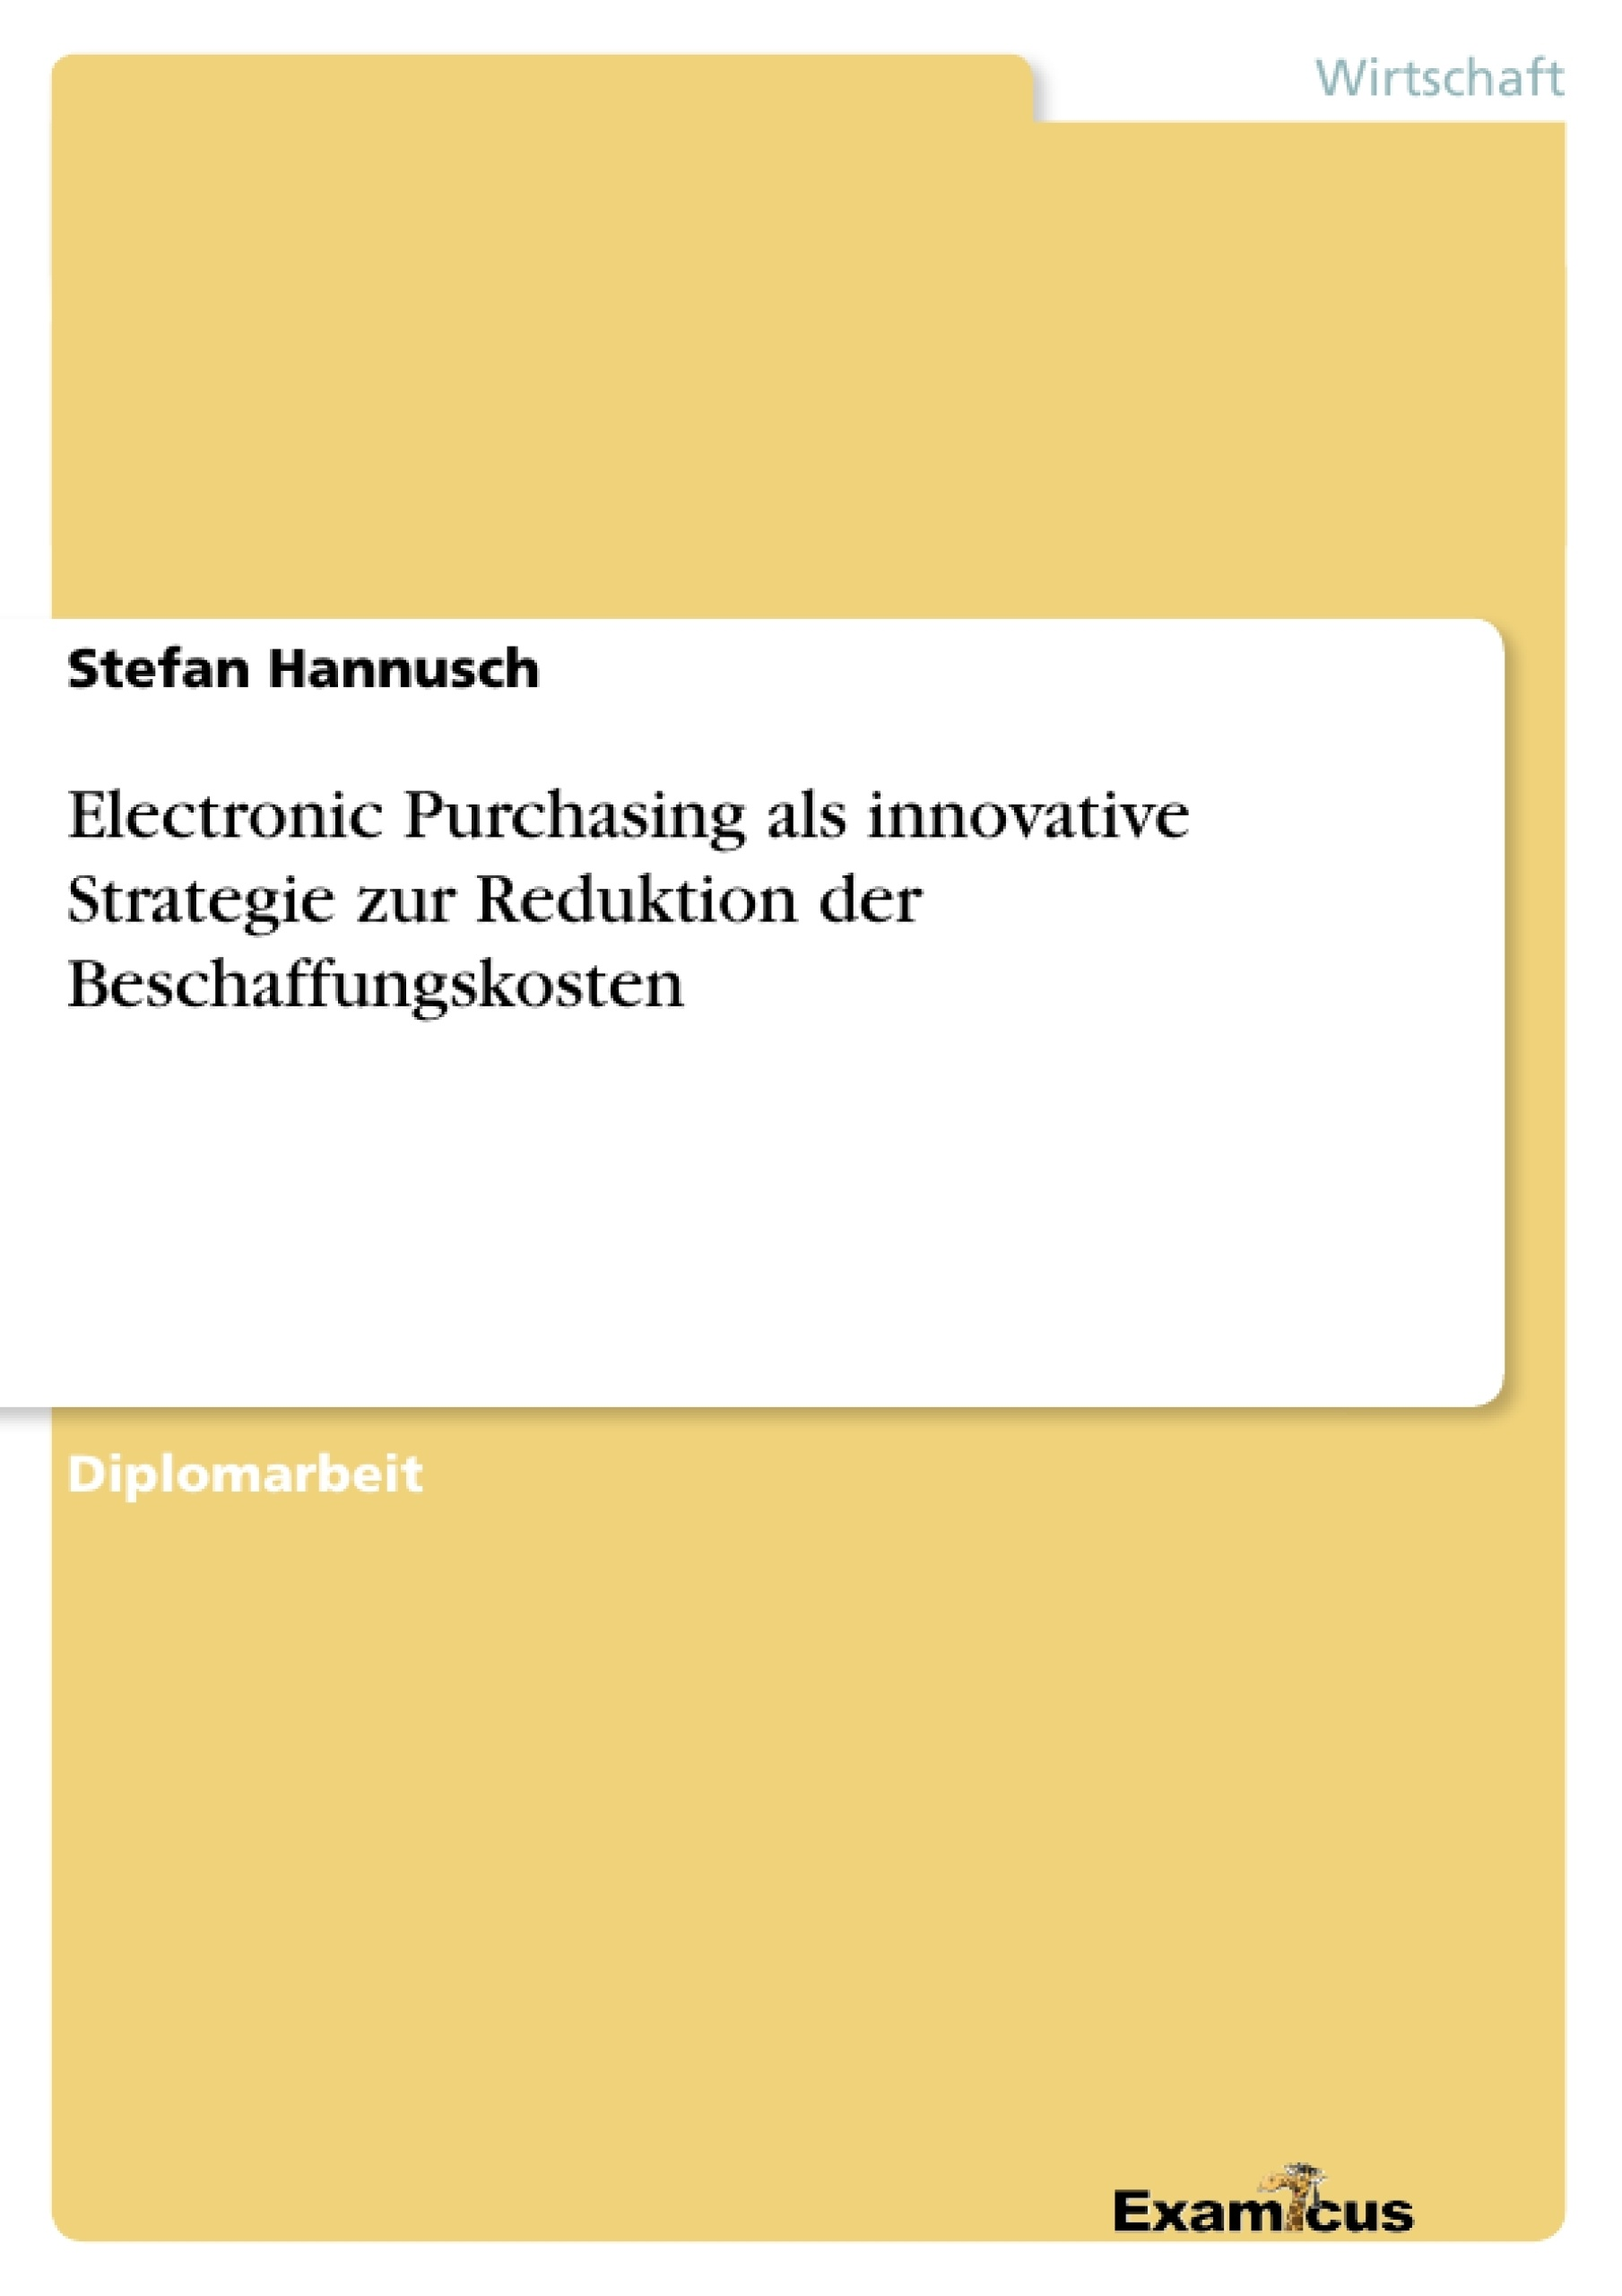 Titel: Electronic Purchasing als innovative Strategie zur Reduktion der Beschaffungskosten